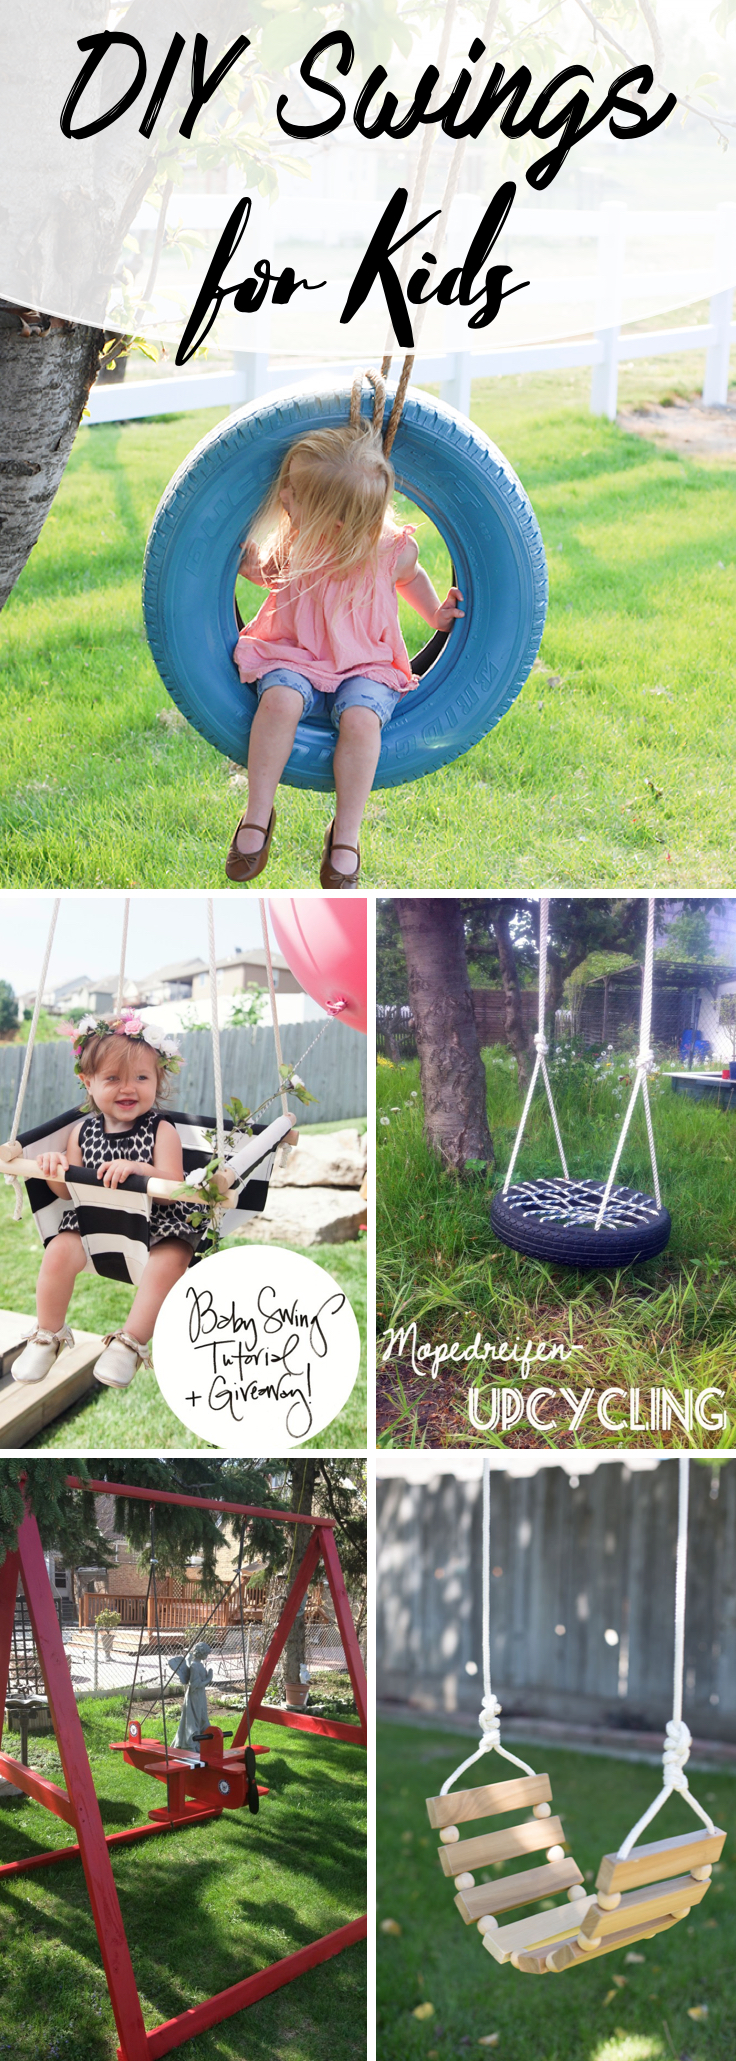 DIY Swings for Kids